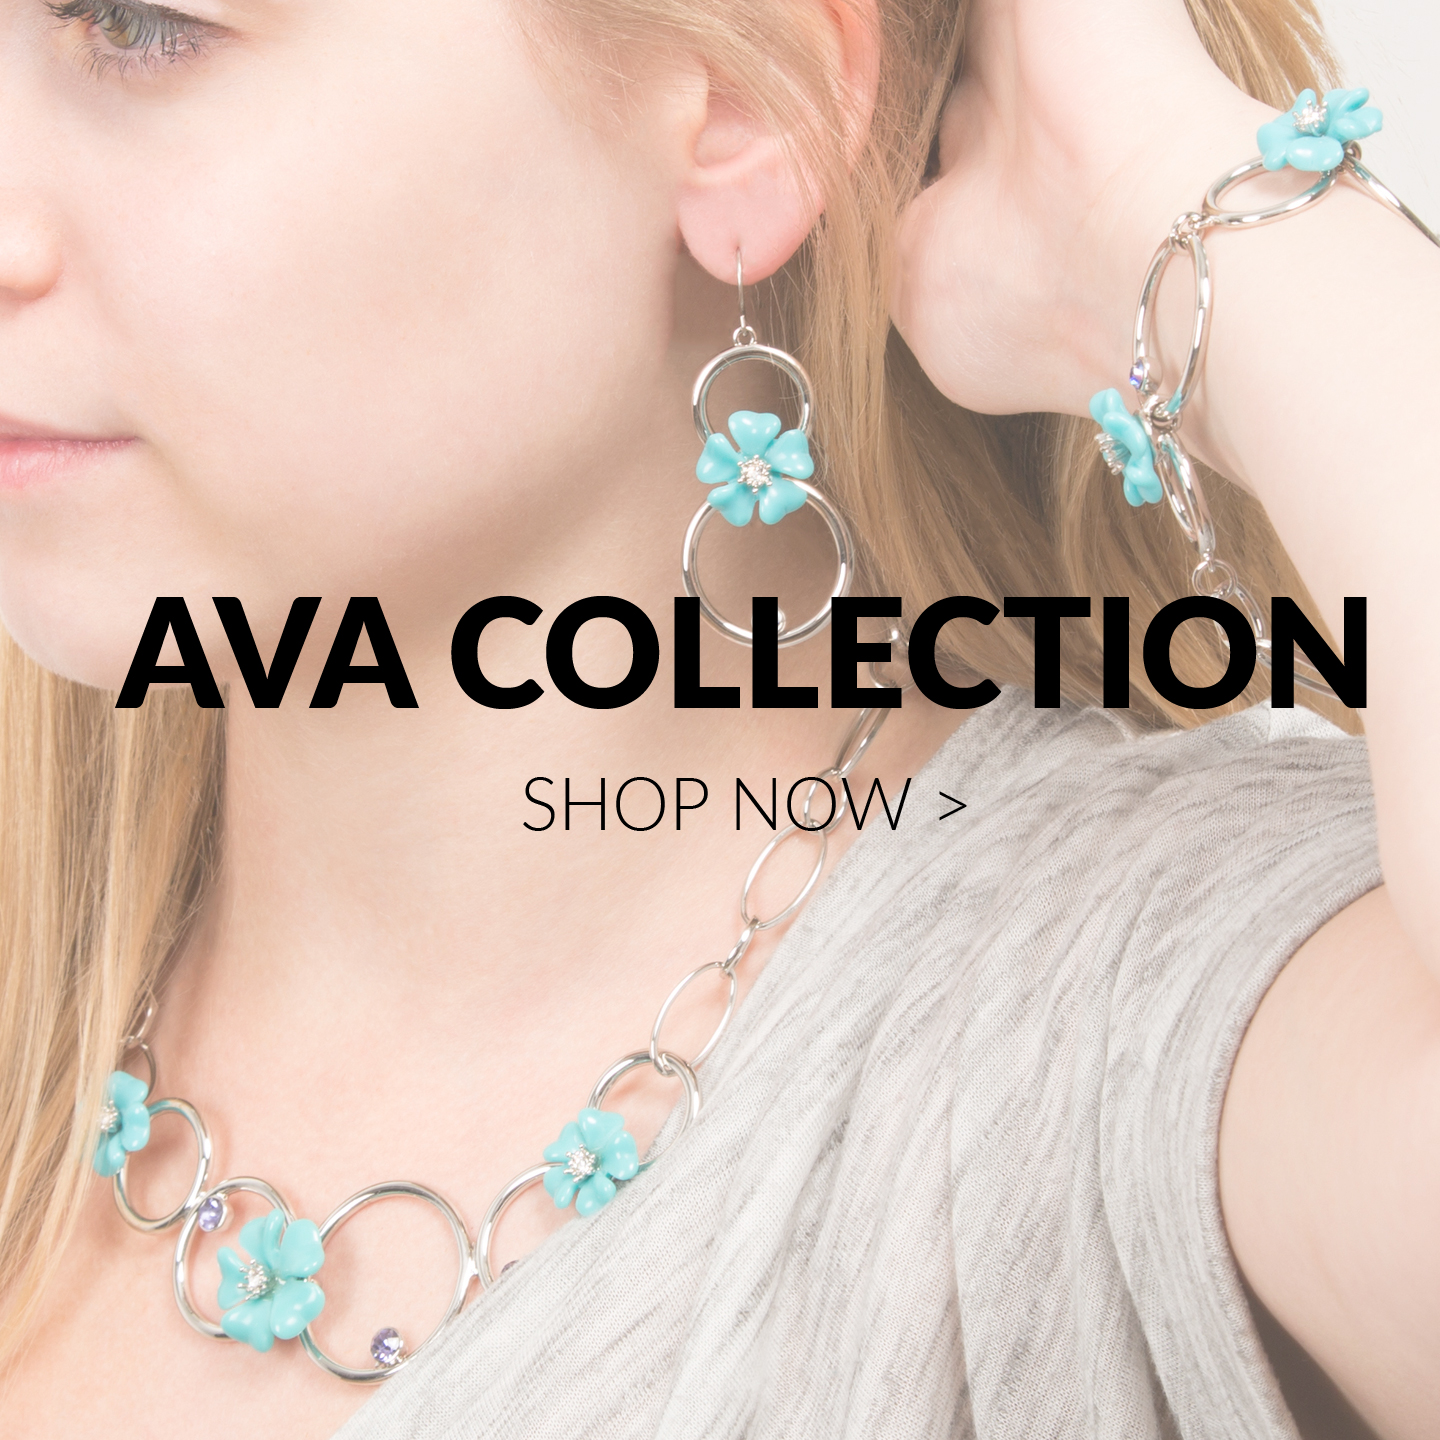 Ava Collection